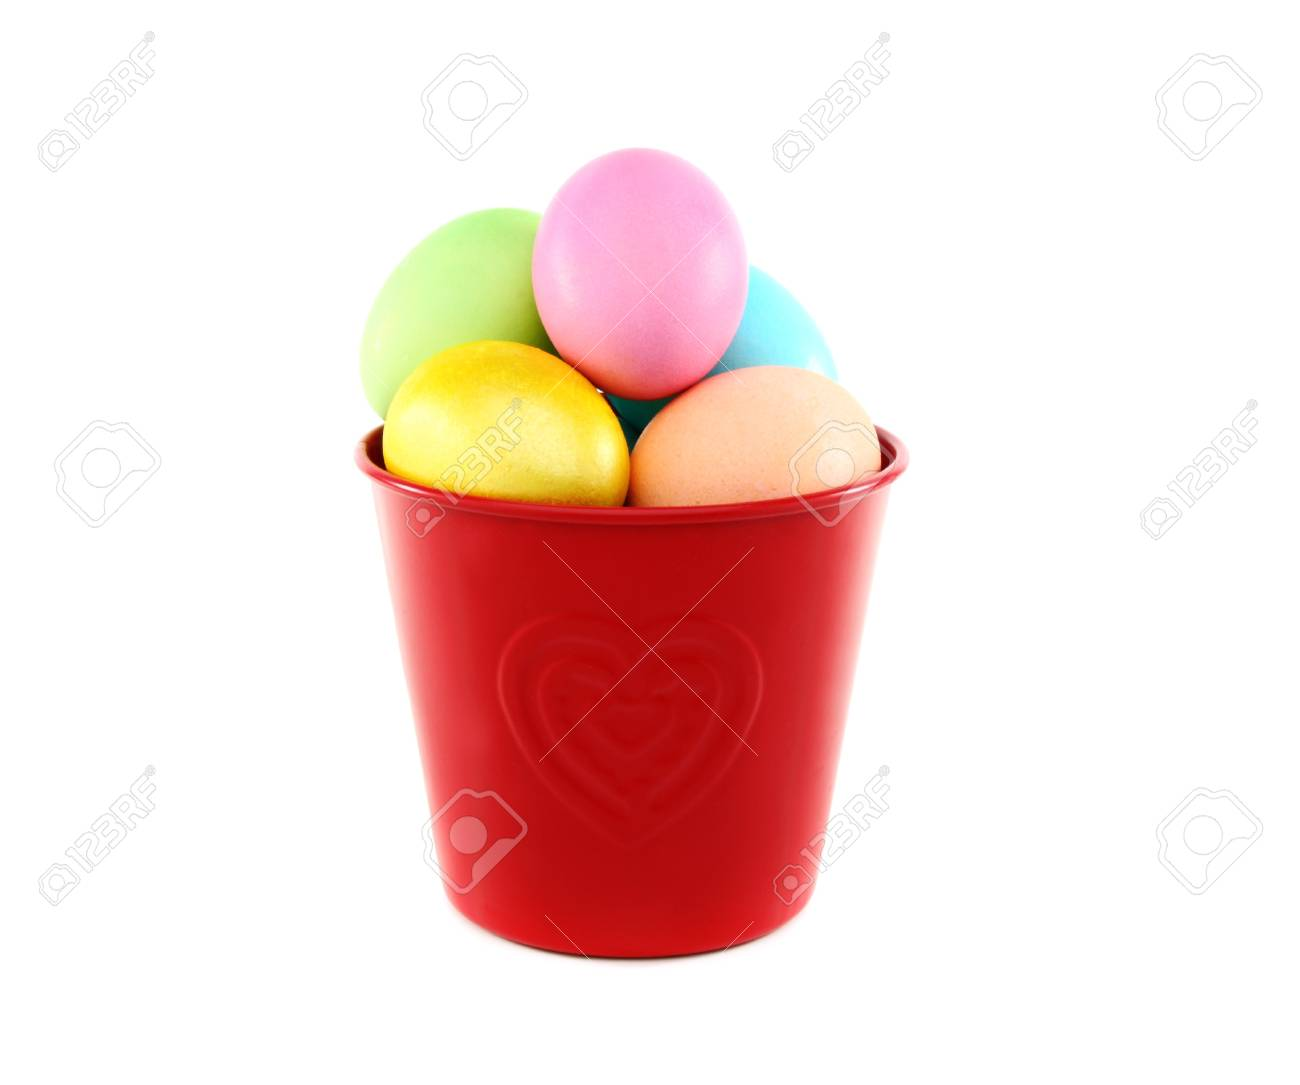 Easter eggs in red bucket on a white background. Stock Photo - 12774524